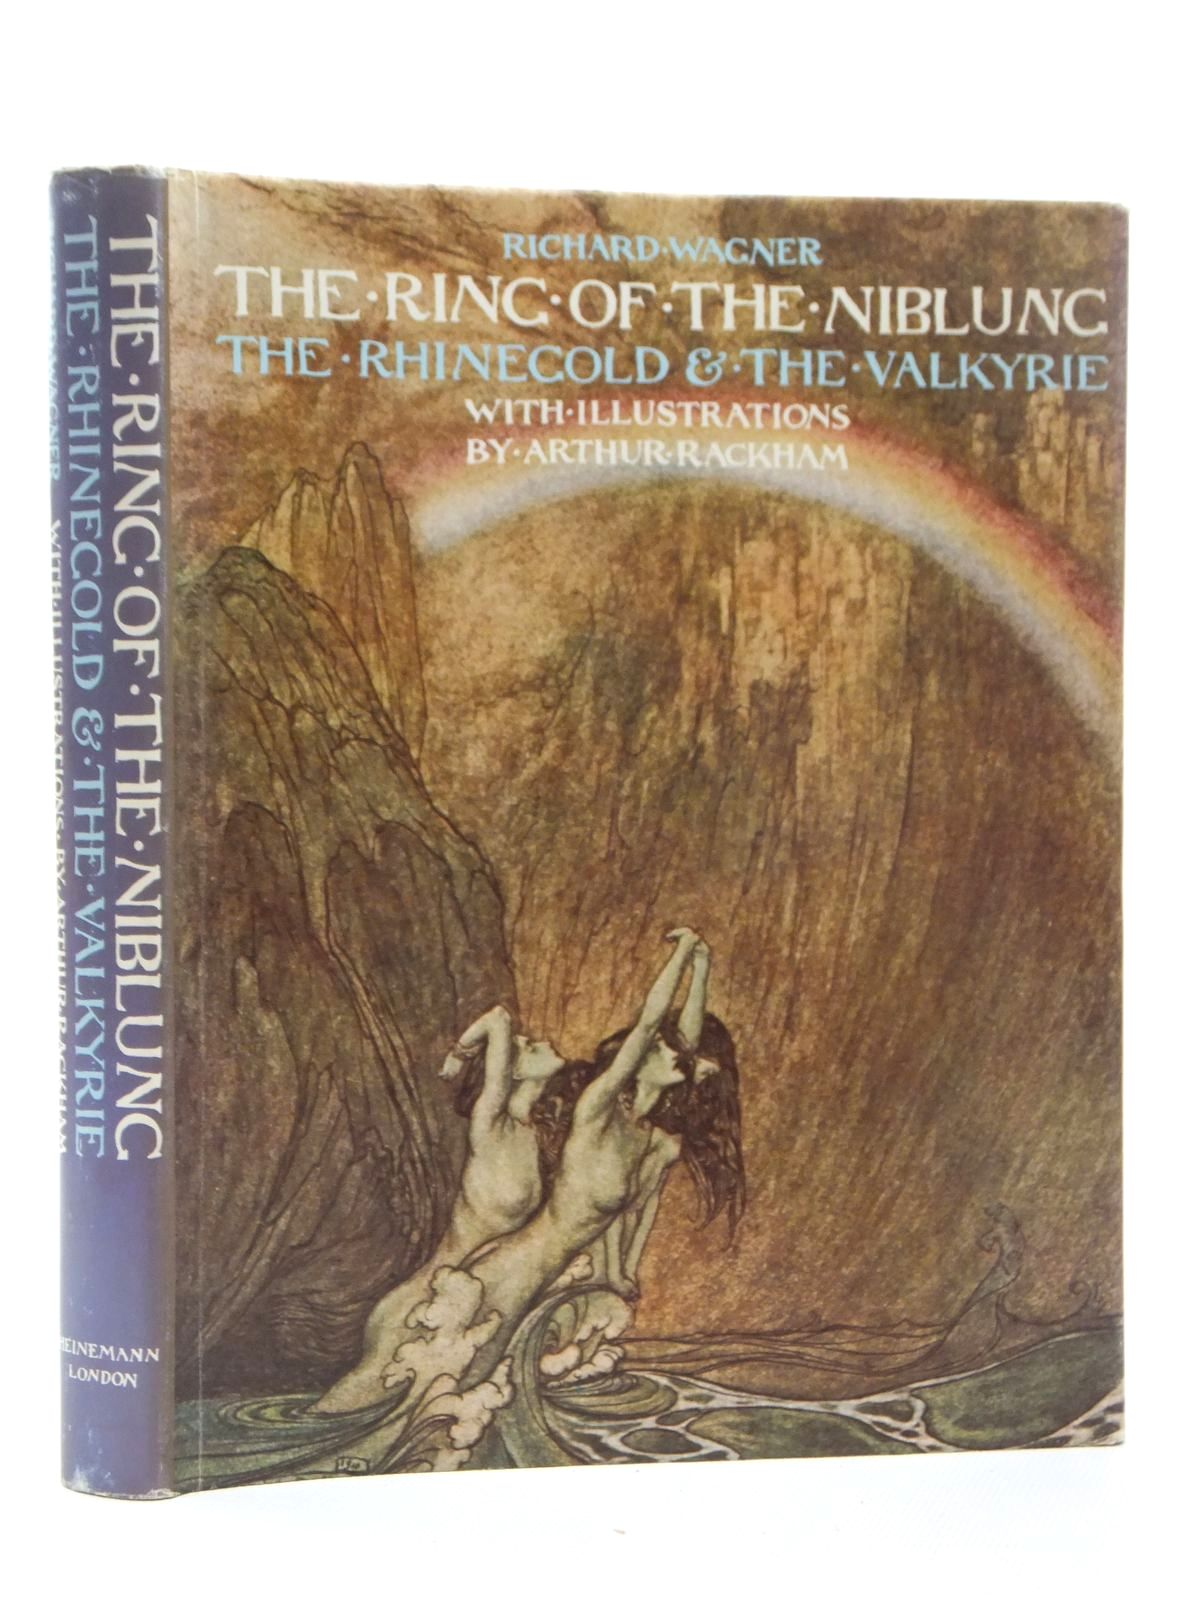 Photo of THE RING OF THE NIBLUNG: THE RHINEGOLD AND THE VALKYRIE written by Wagner, Richard illustrated by Rackham, Arthur published by William Heinemann Ltd. (STOCK CODE: 1317066)  for sale by Stella & Rose's Books